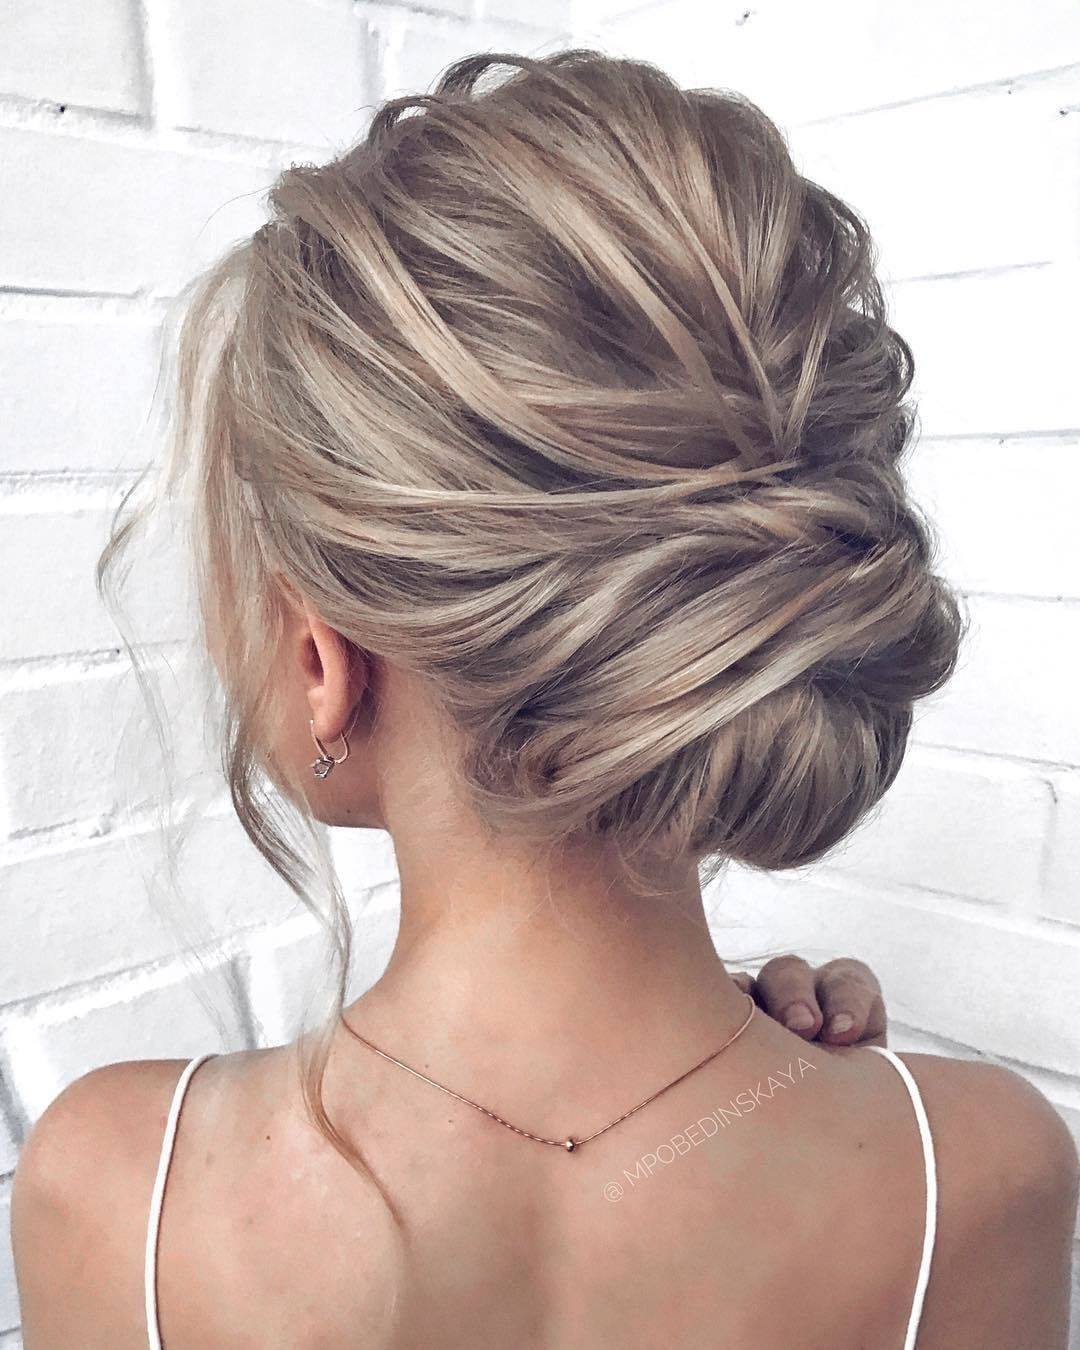 Wedding Hairstyles 2019: Updo Hairstyles For Prom, Wedding Or Etc. 2019